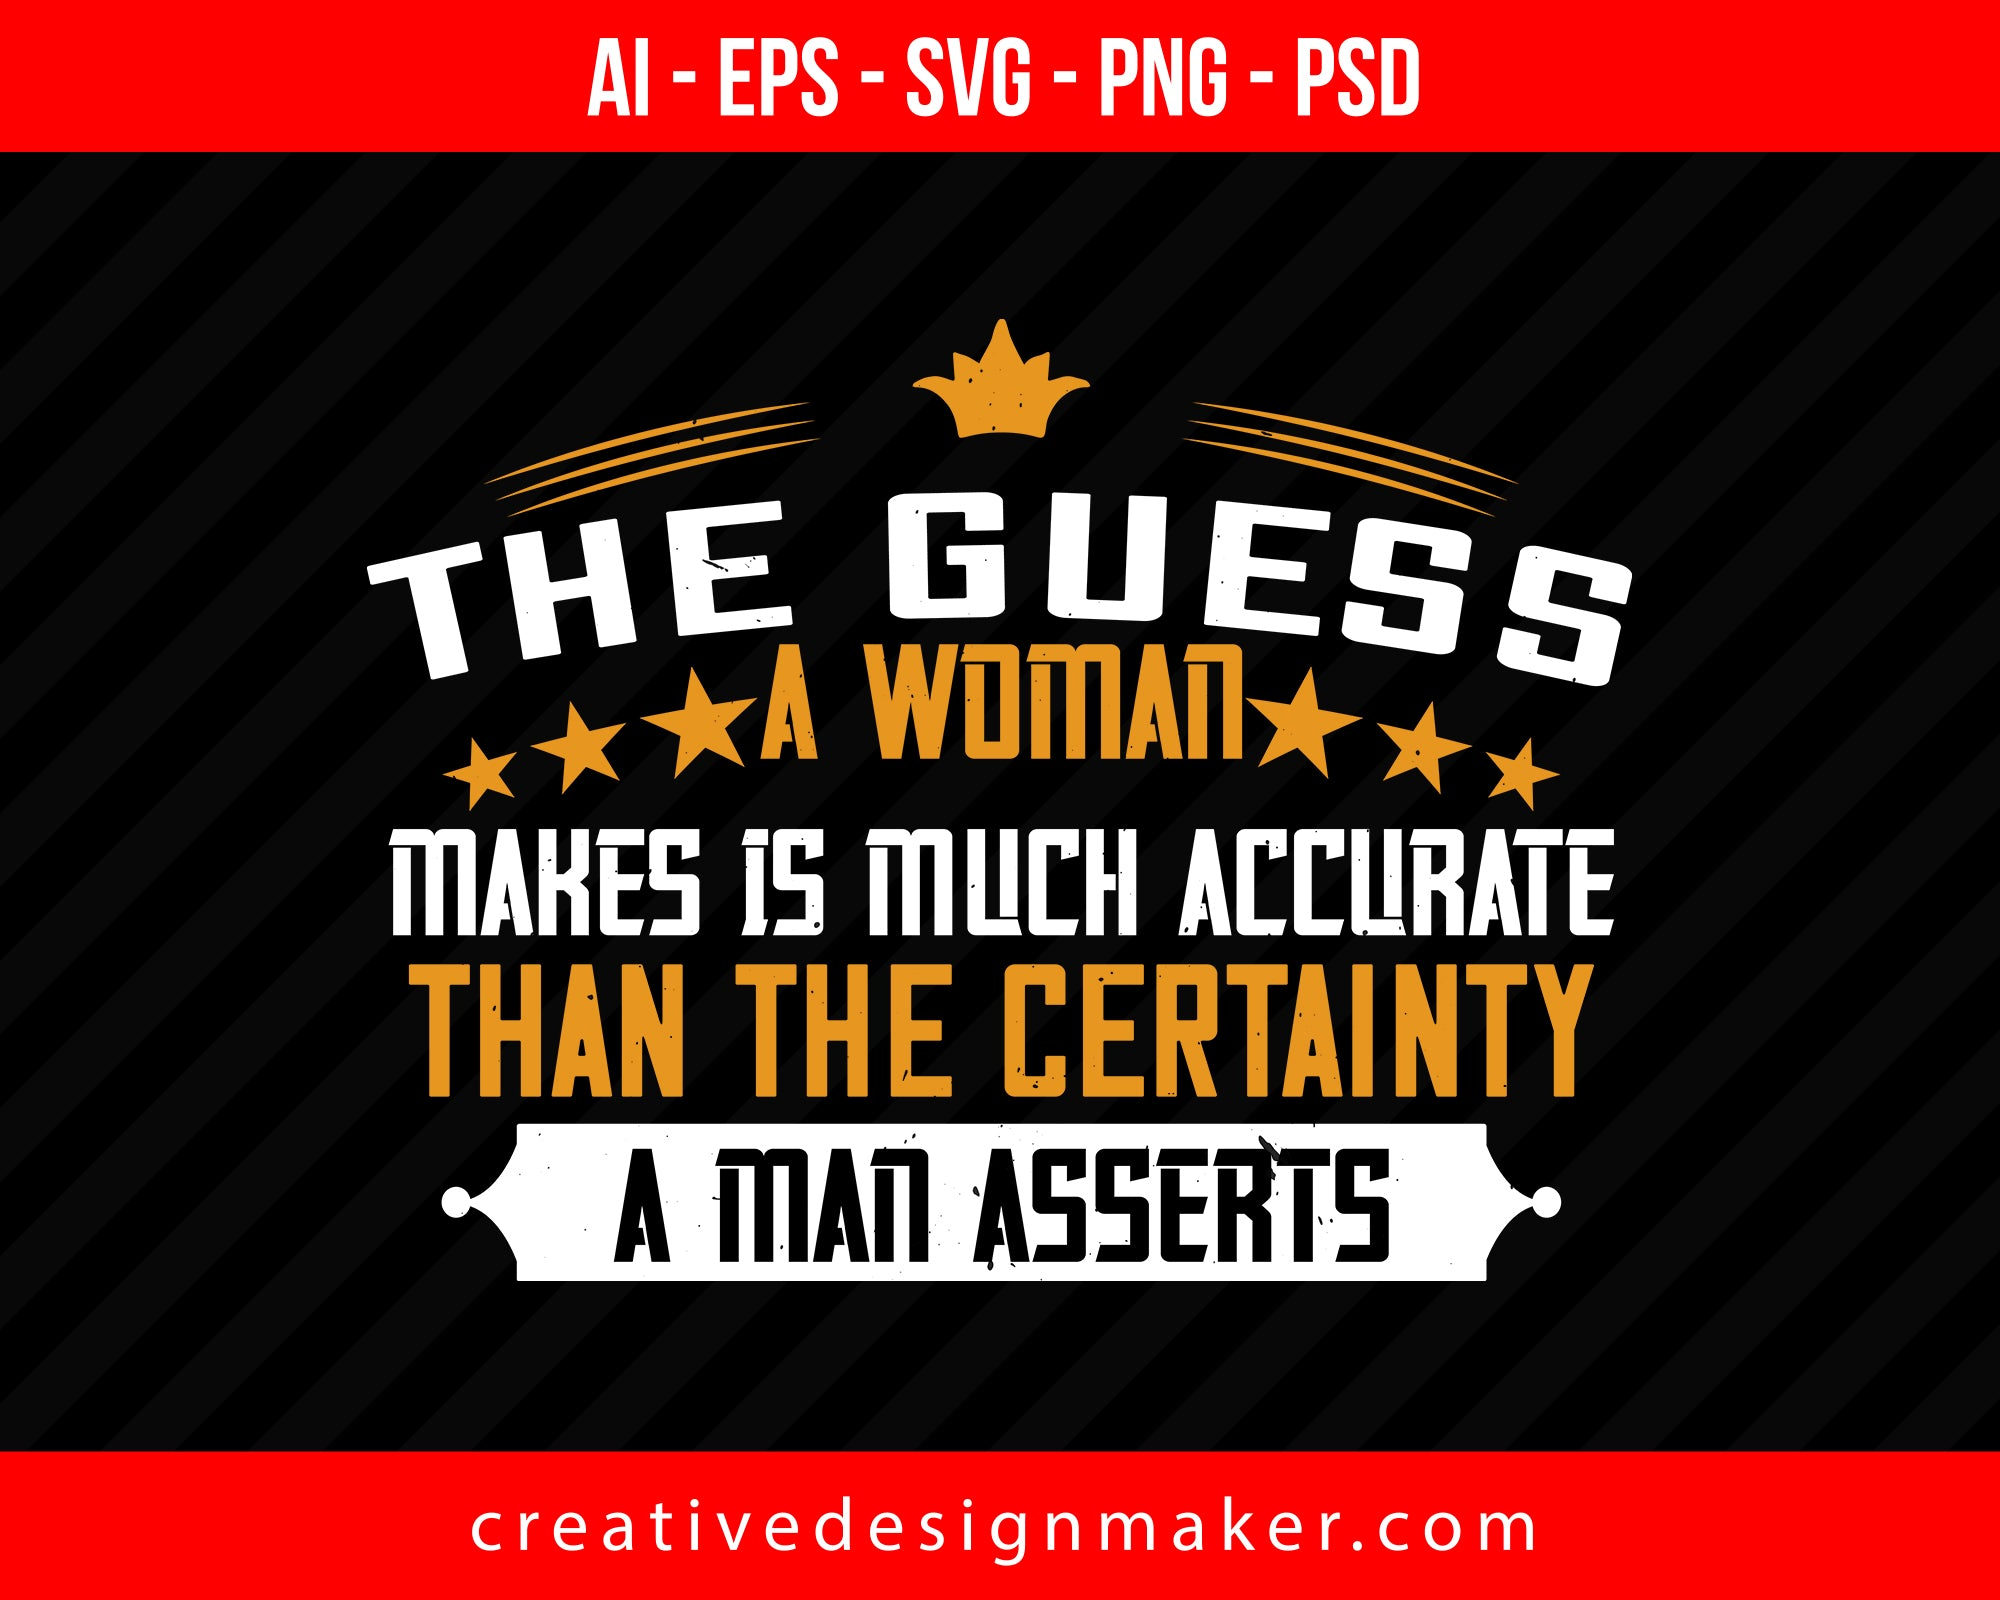 The guess, a woman makes is much accurate than the certainty a man asserts Women's Day Print Ready Editable T-Shirt SVG Design!